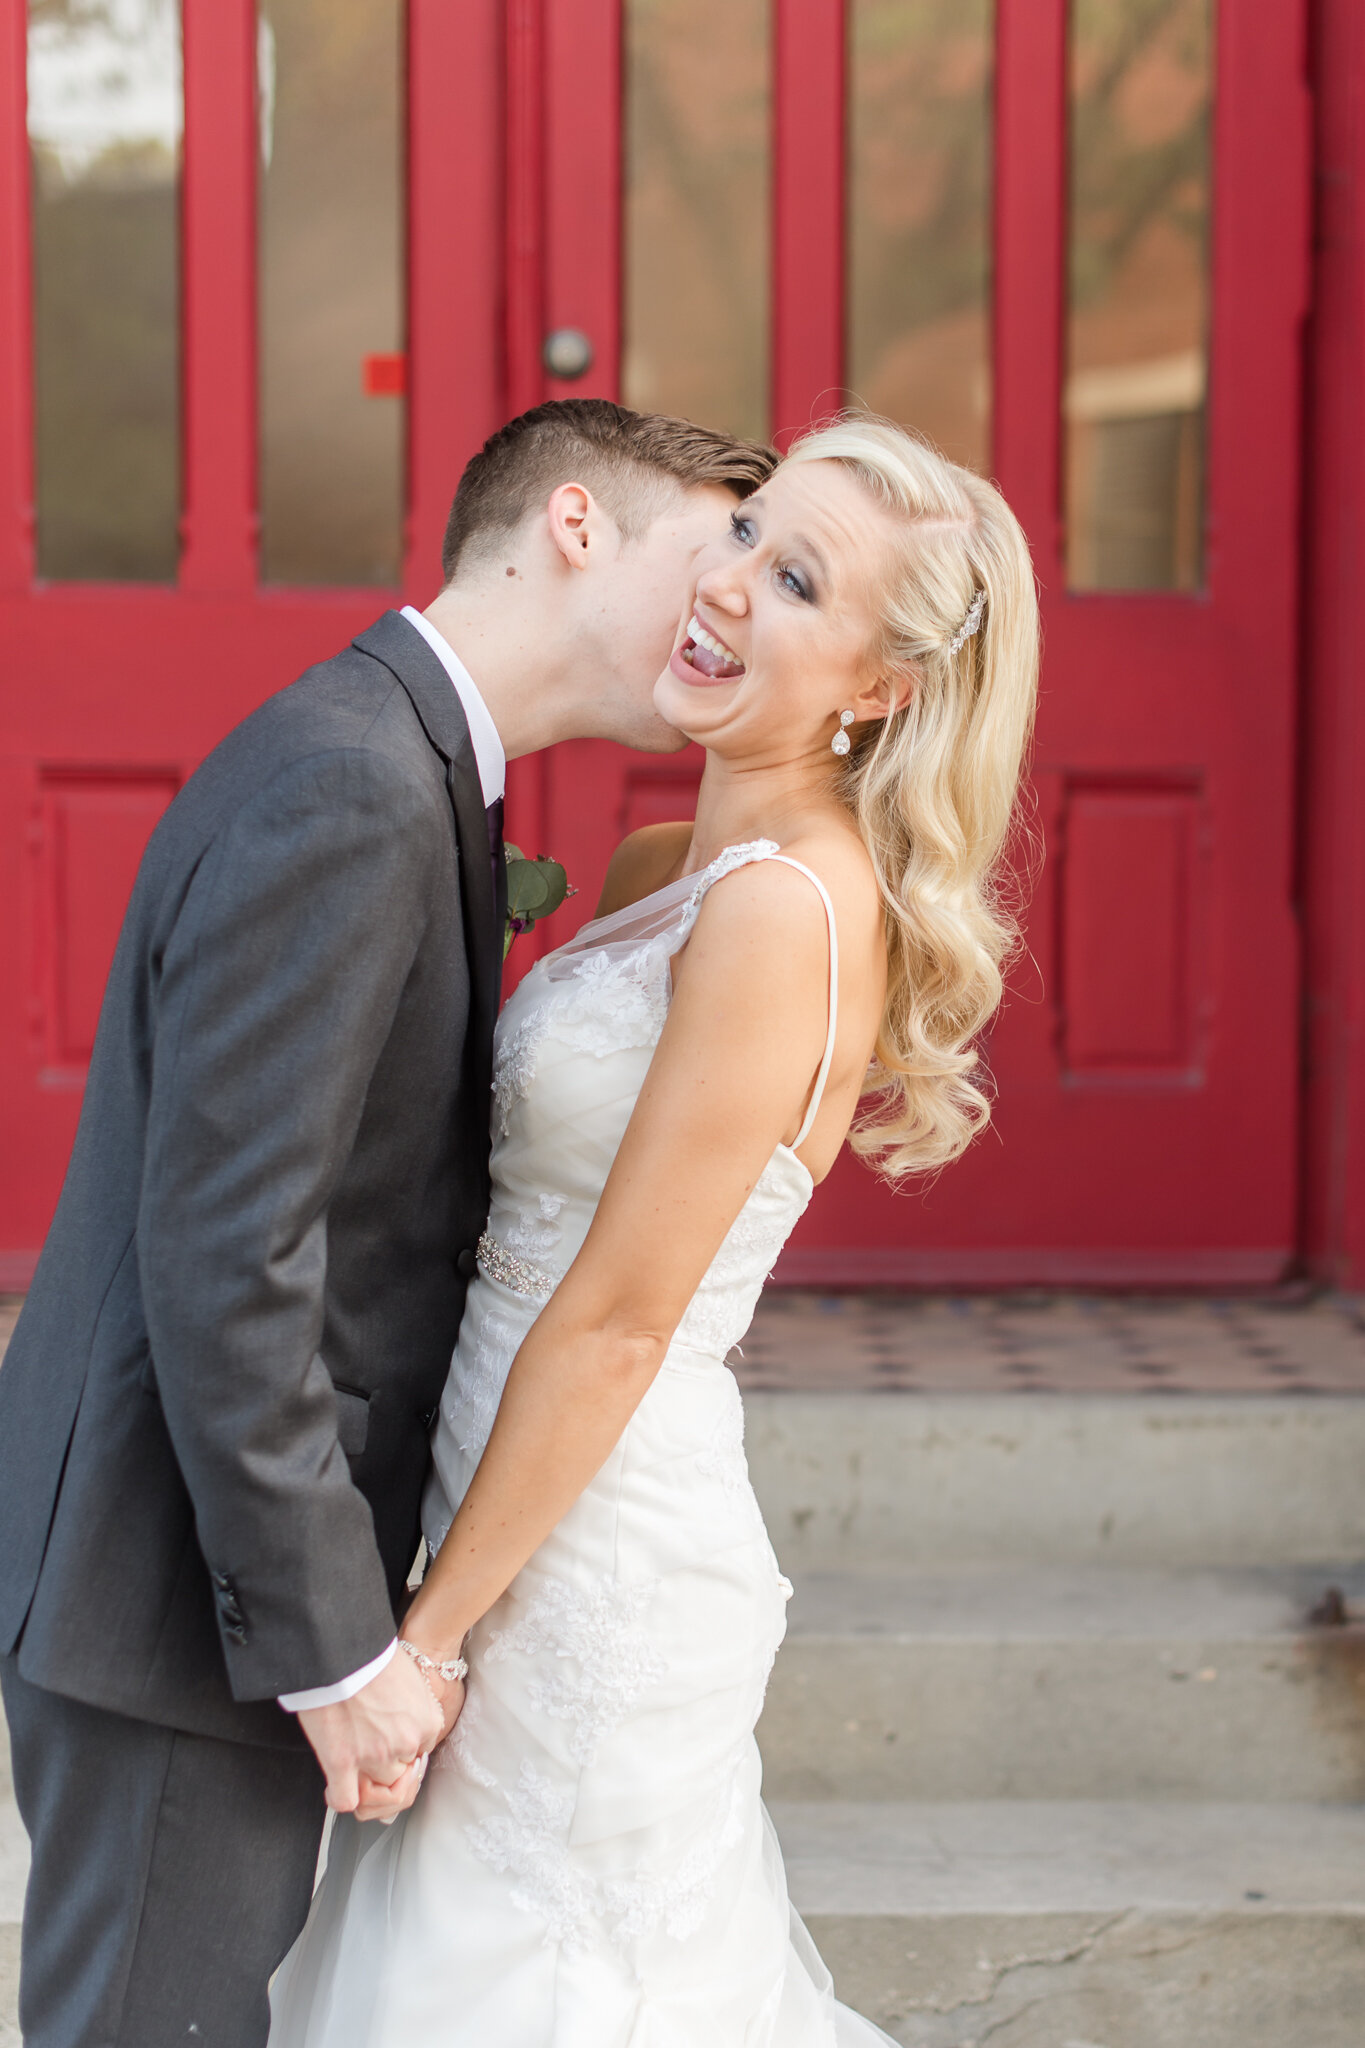 Downtown Indianapolis Wedding at Cyrus Place8339.jpg